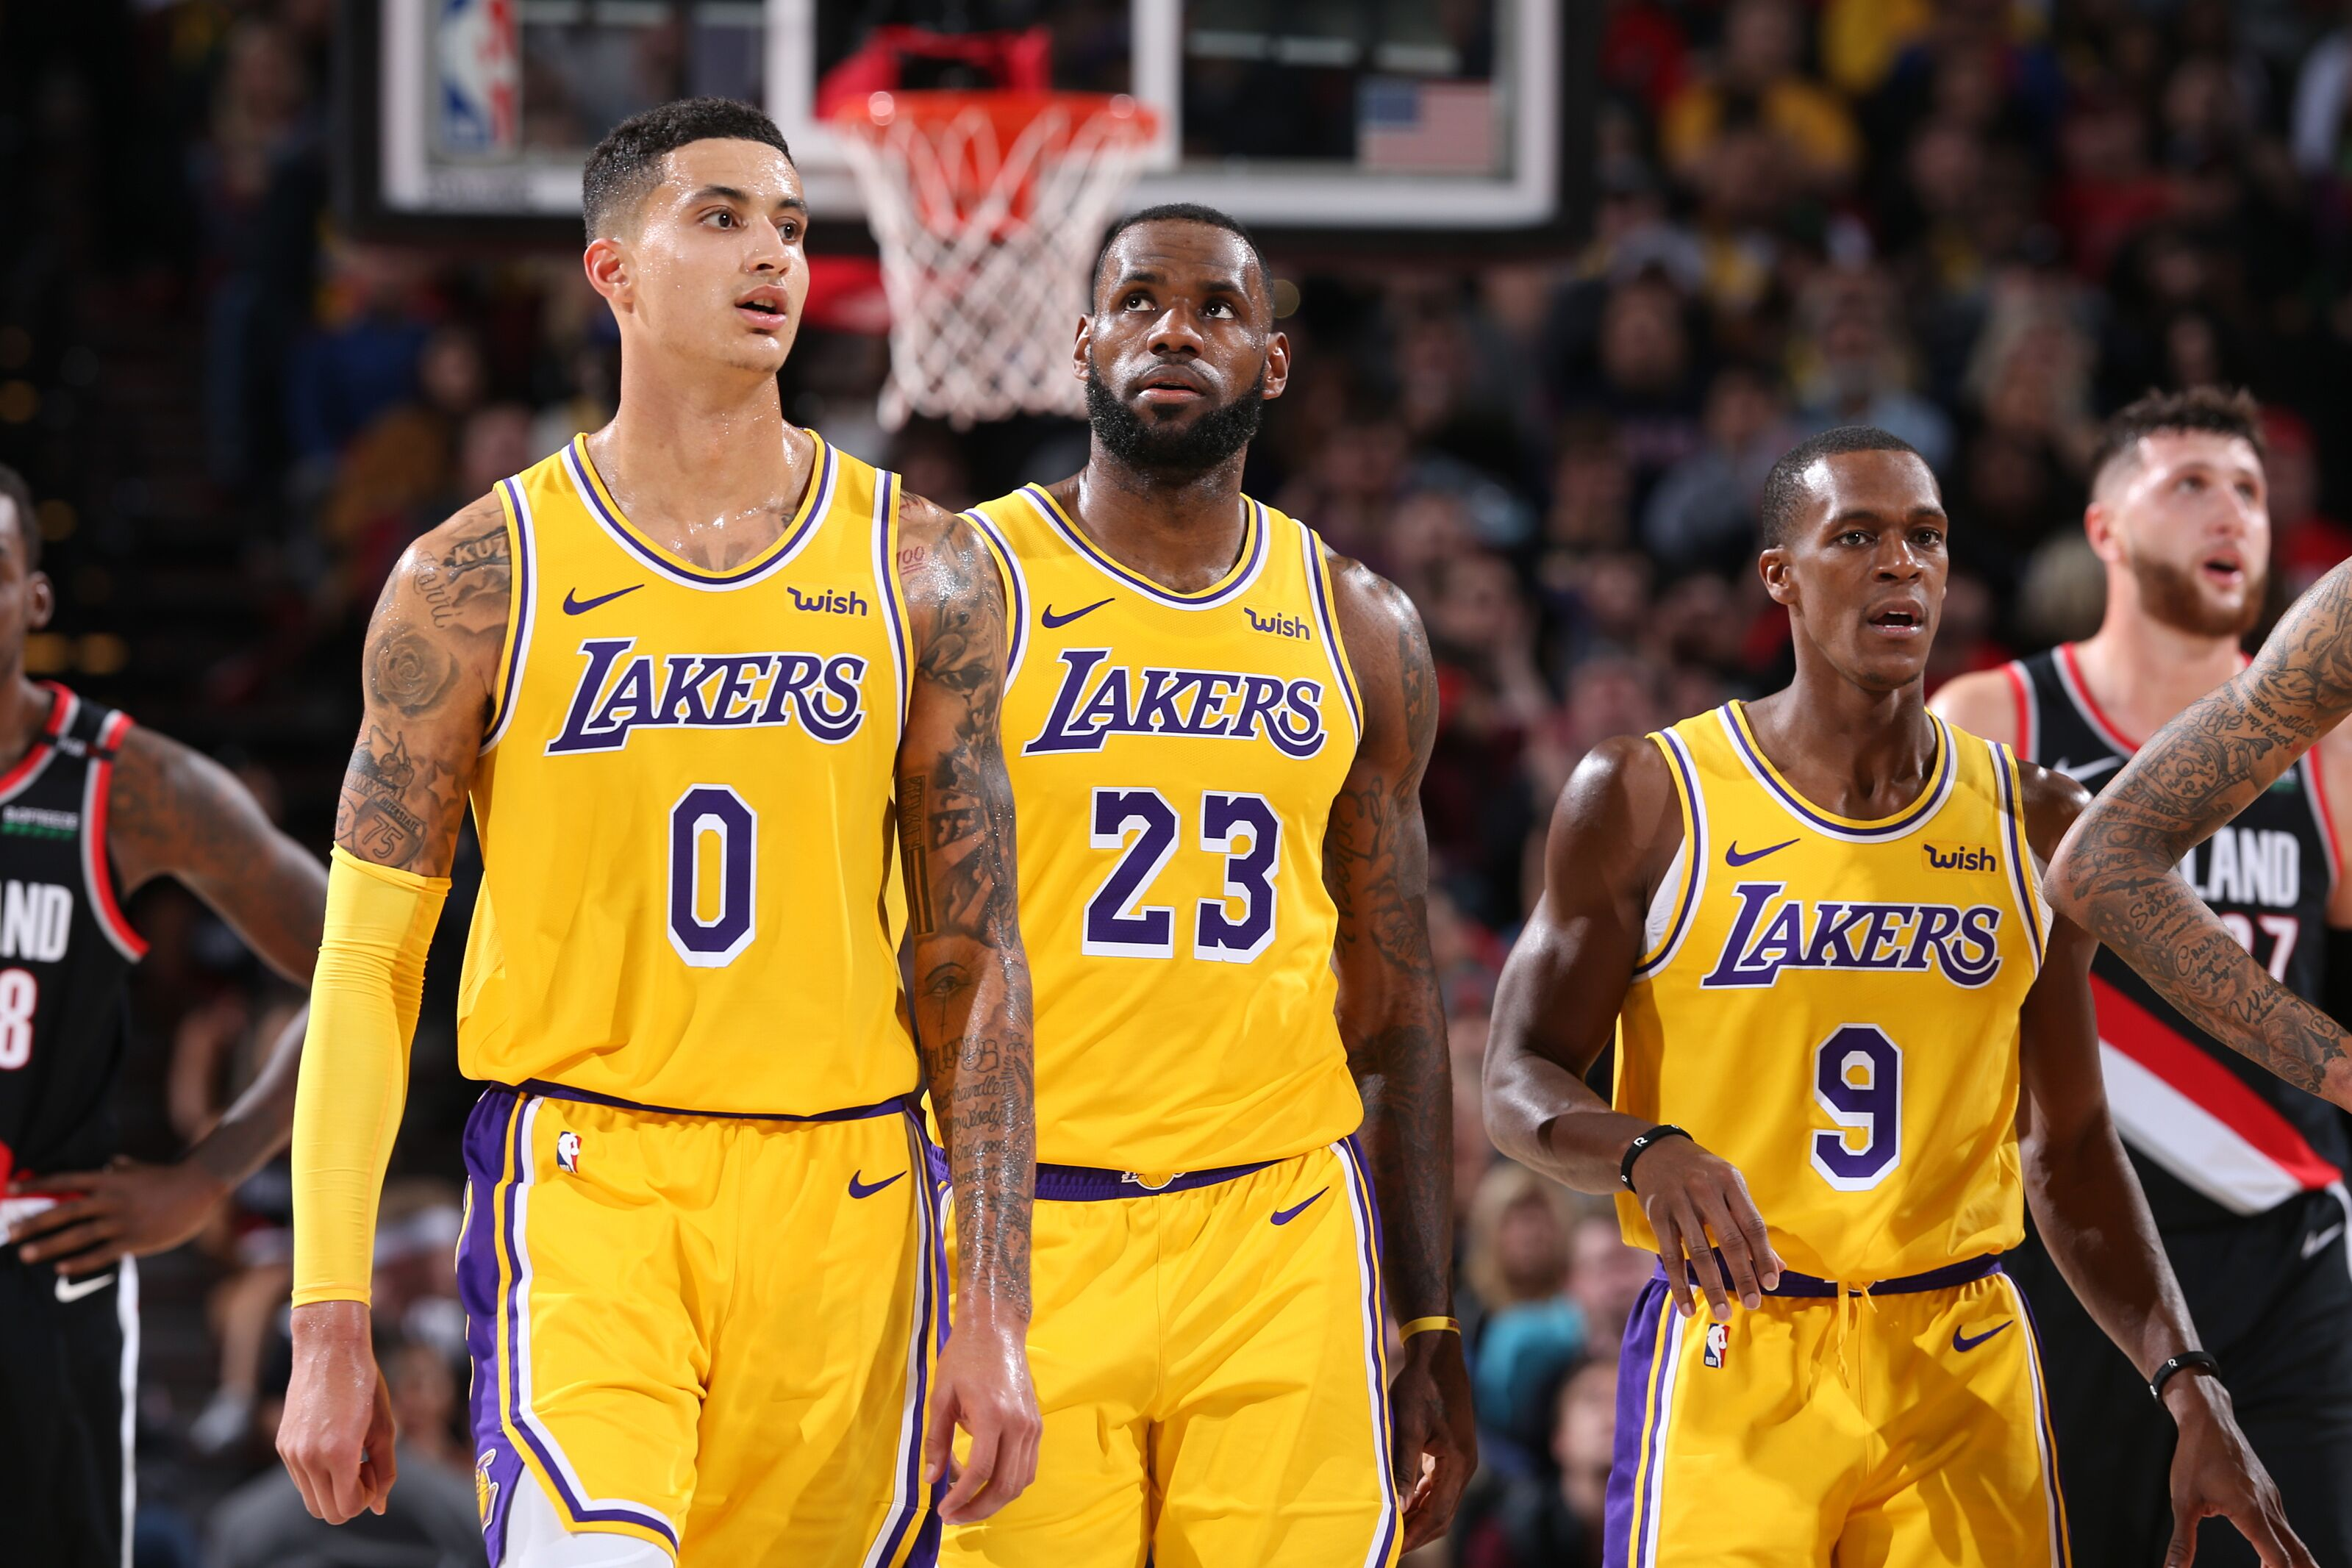 Los Angeles Lakers 3 Potential Starting Lineups In 2019 20